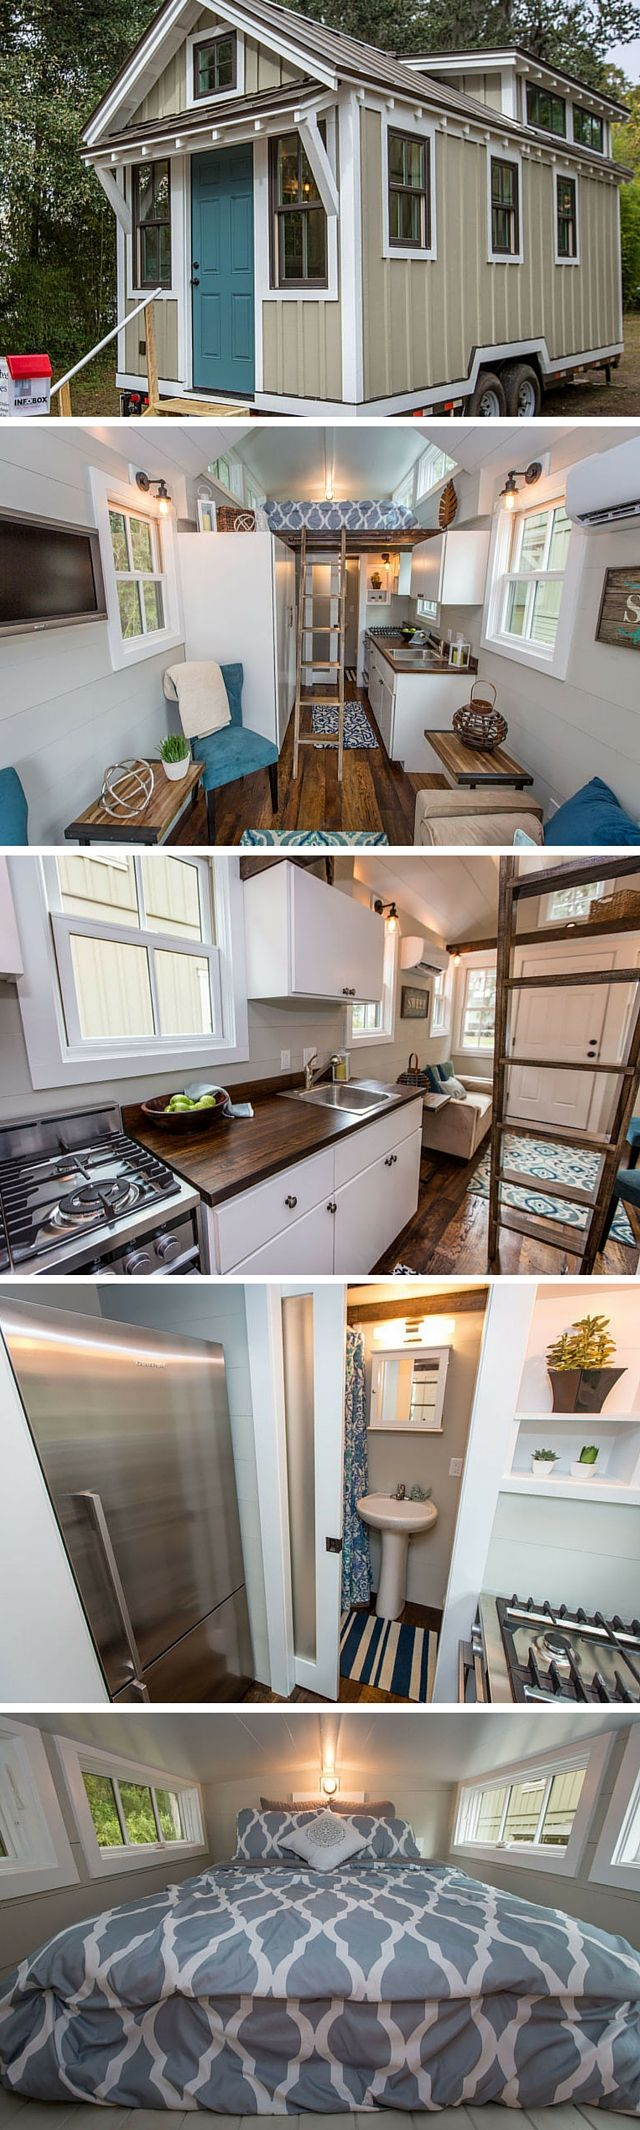 A tiny house from driftwood tiny homes spaces for Kleines mobiles haus